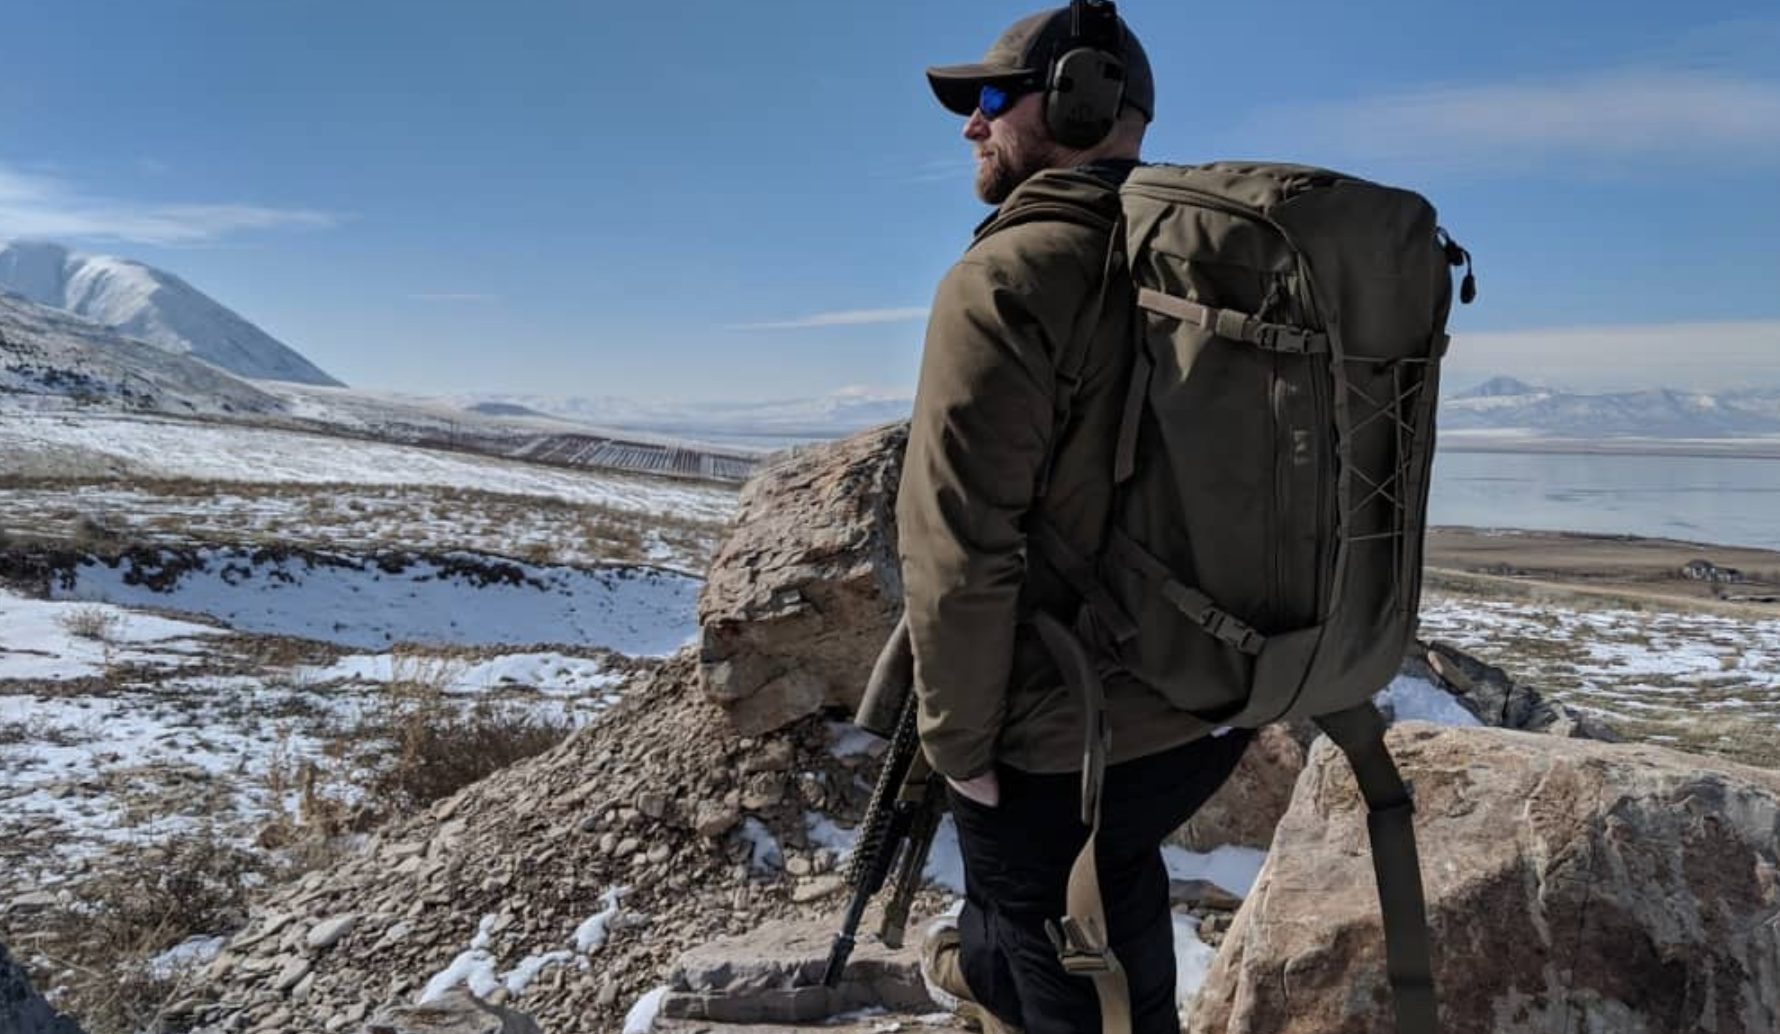 Arc'teryx LEAF Assault Pack 45 Review